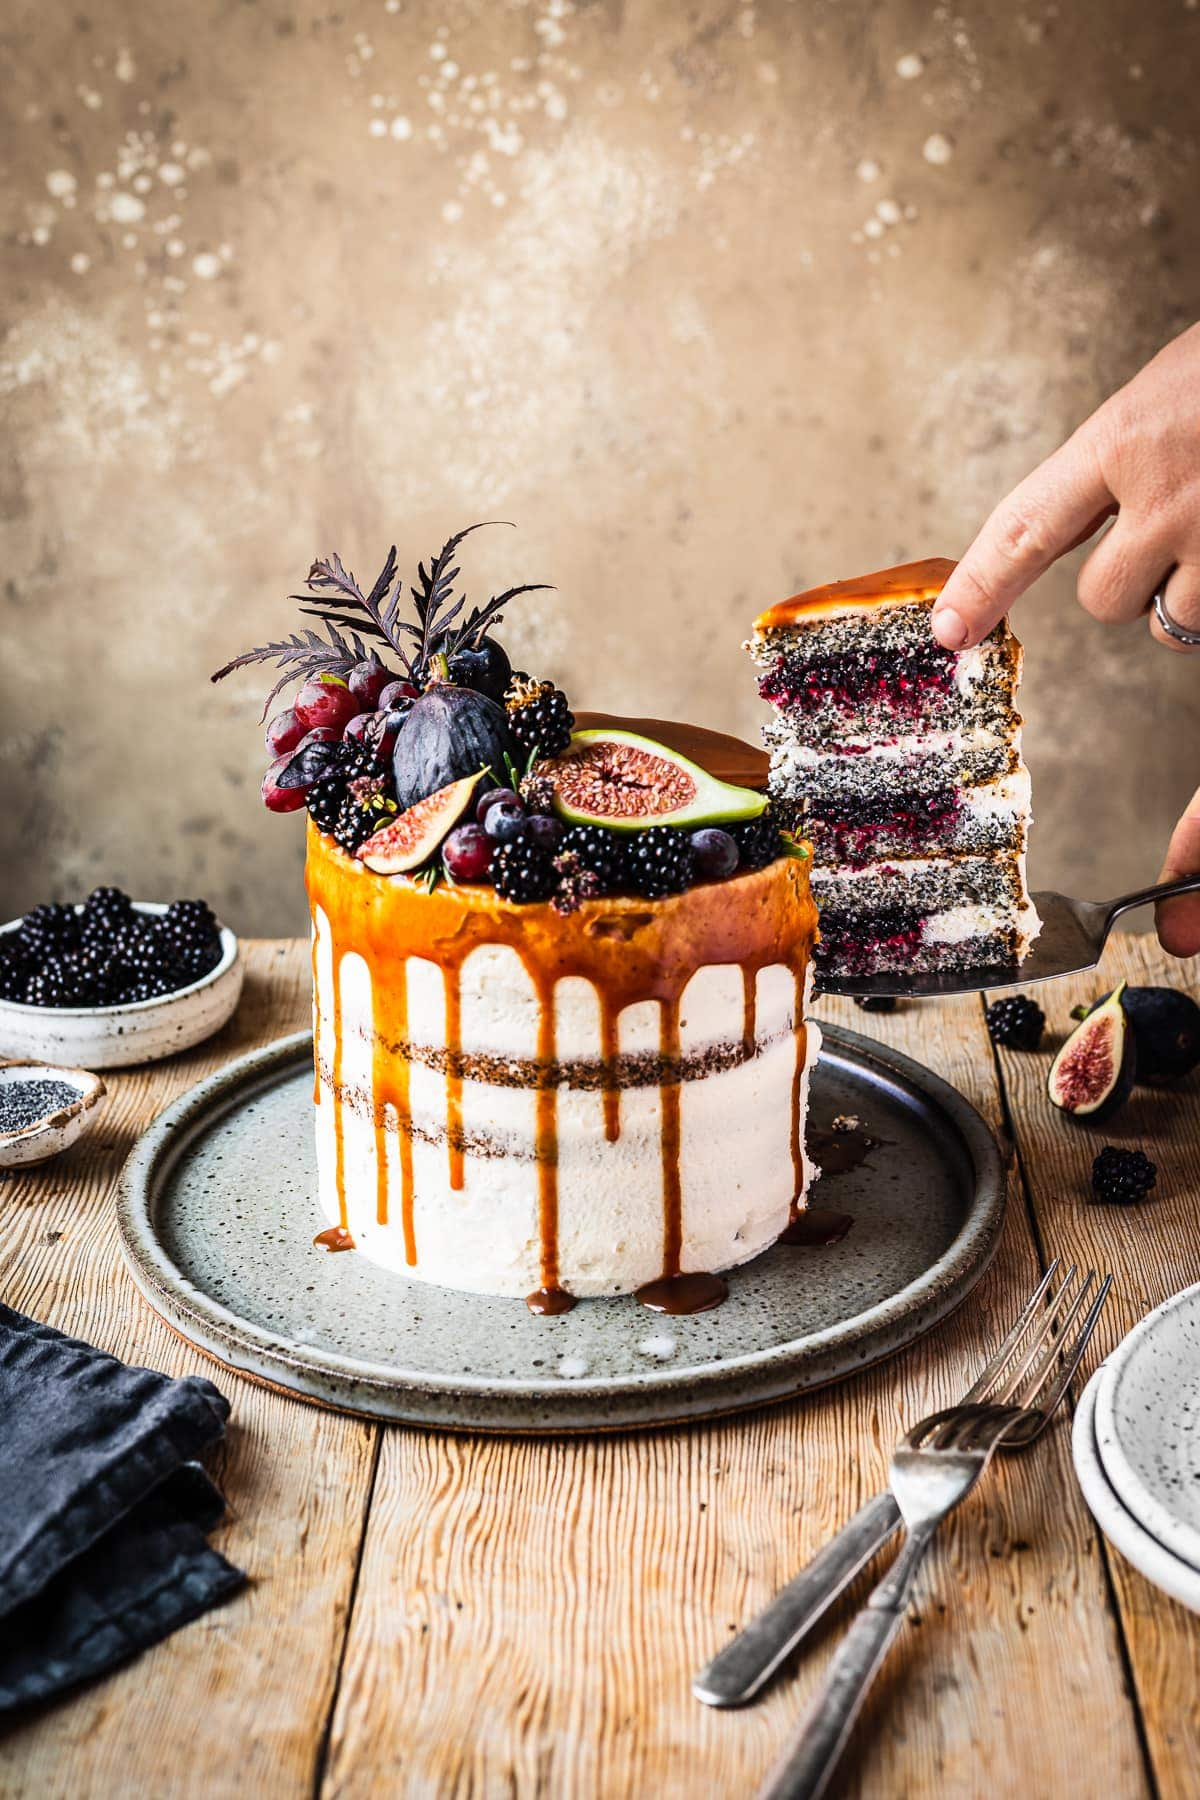 A white frosted layer cake with a caramel drip and a crown of late summer fruit on top. Hands are removing a slice balanced on a cake server, revealing layers of poppy seed cake, vibrant purple jam and white frosting. The cake sits on a blue grey ceramic platter on a wooden table with forks and small bowls of poppy seeds and blackberries nearby. There is a warm tan stone background behind the table.